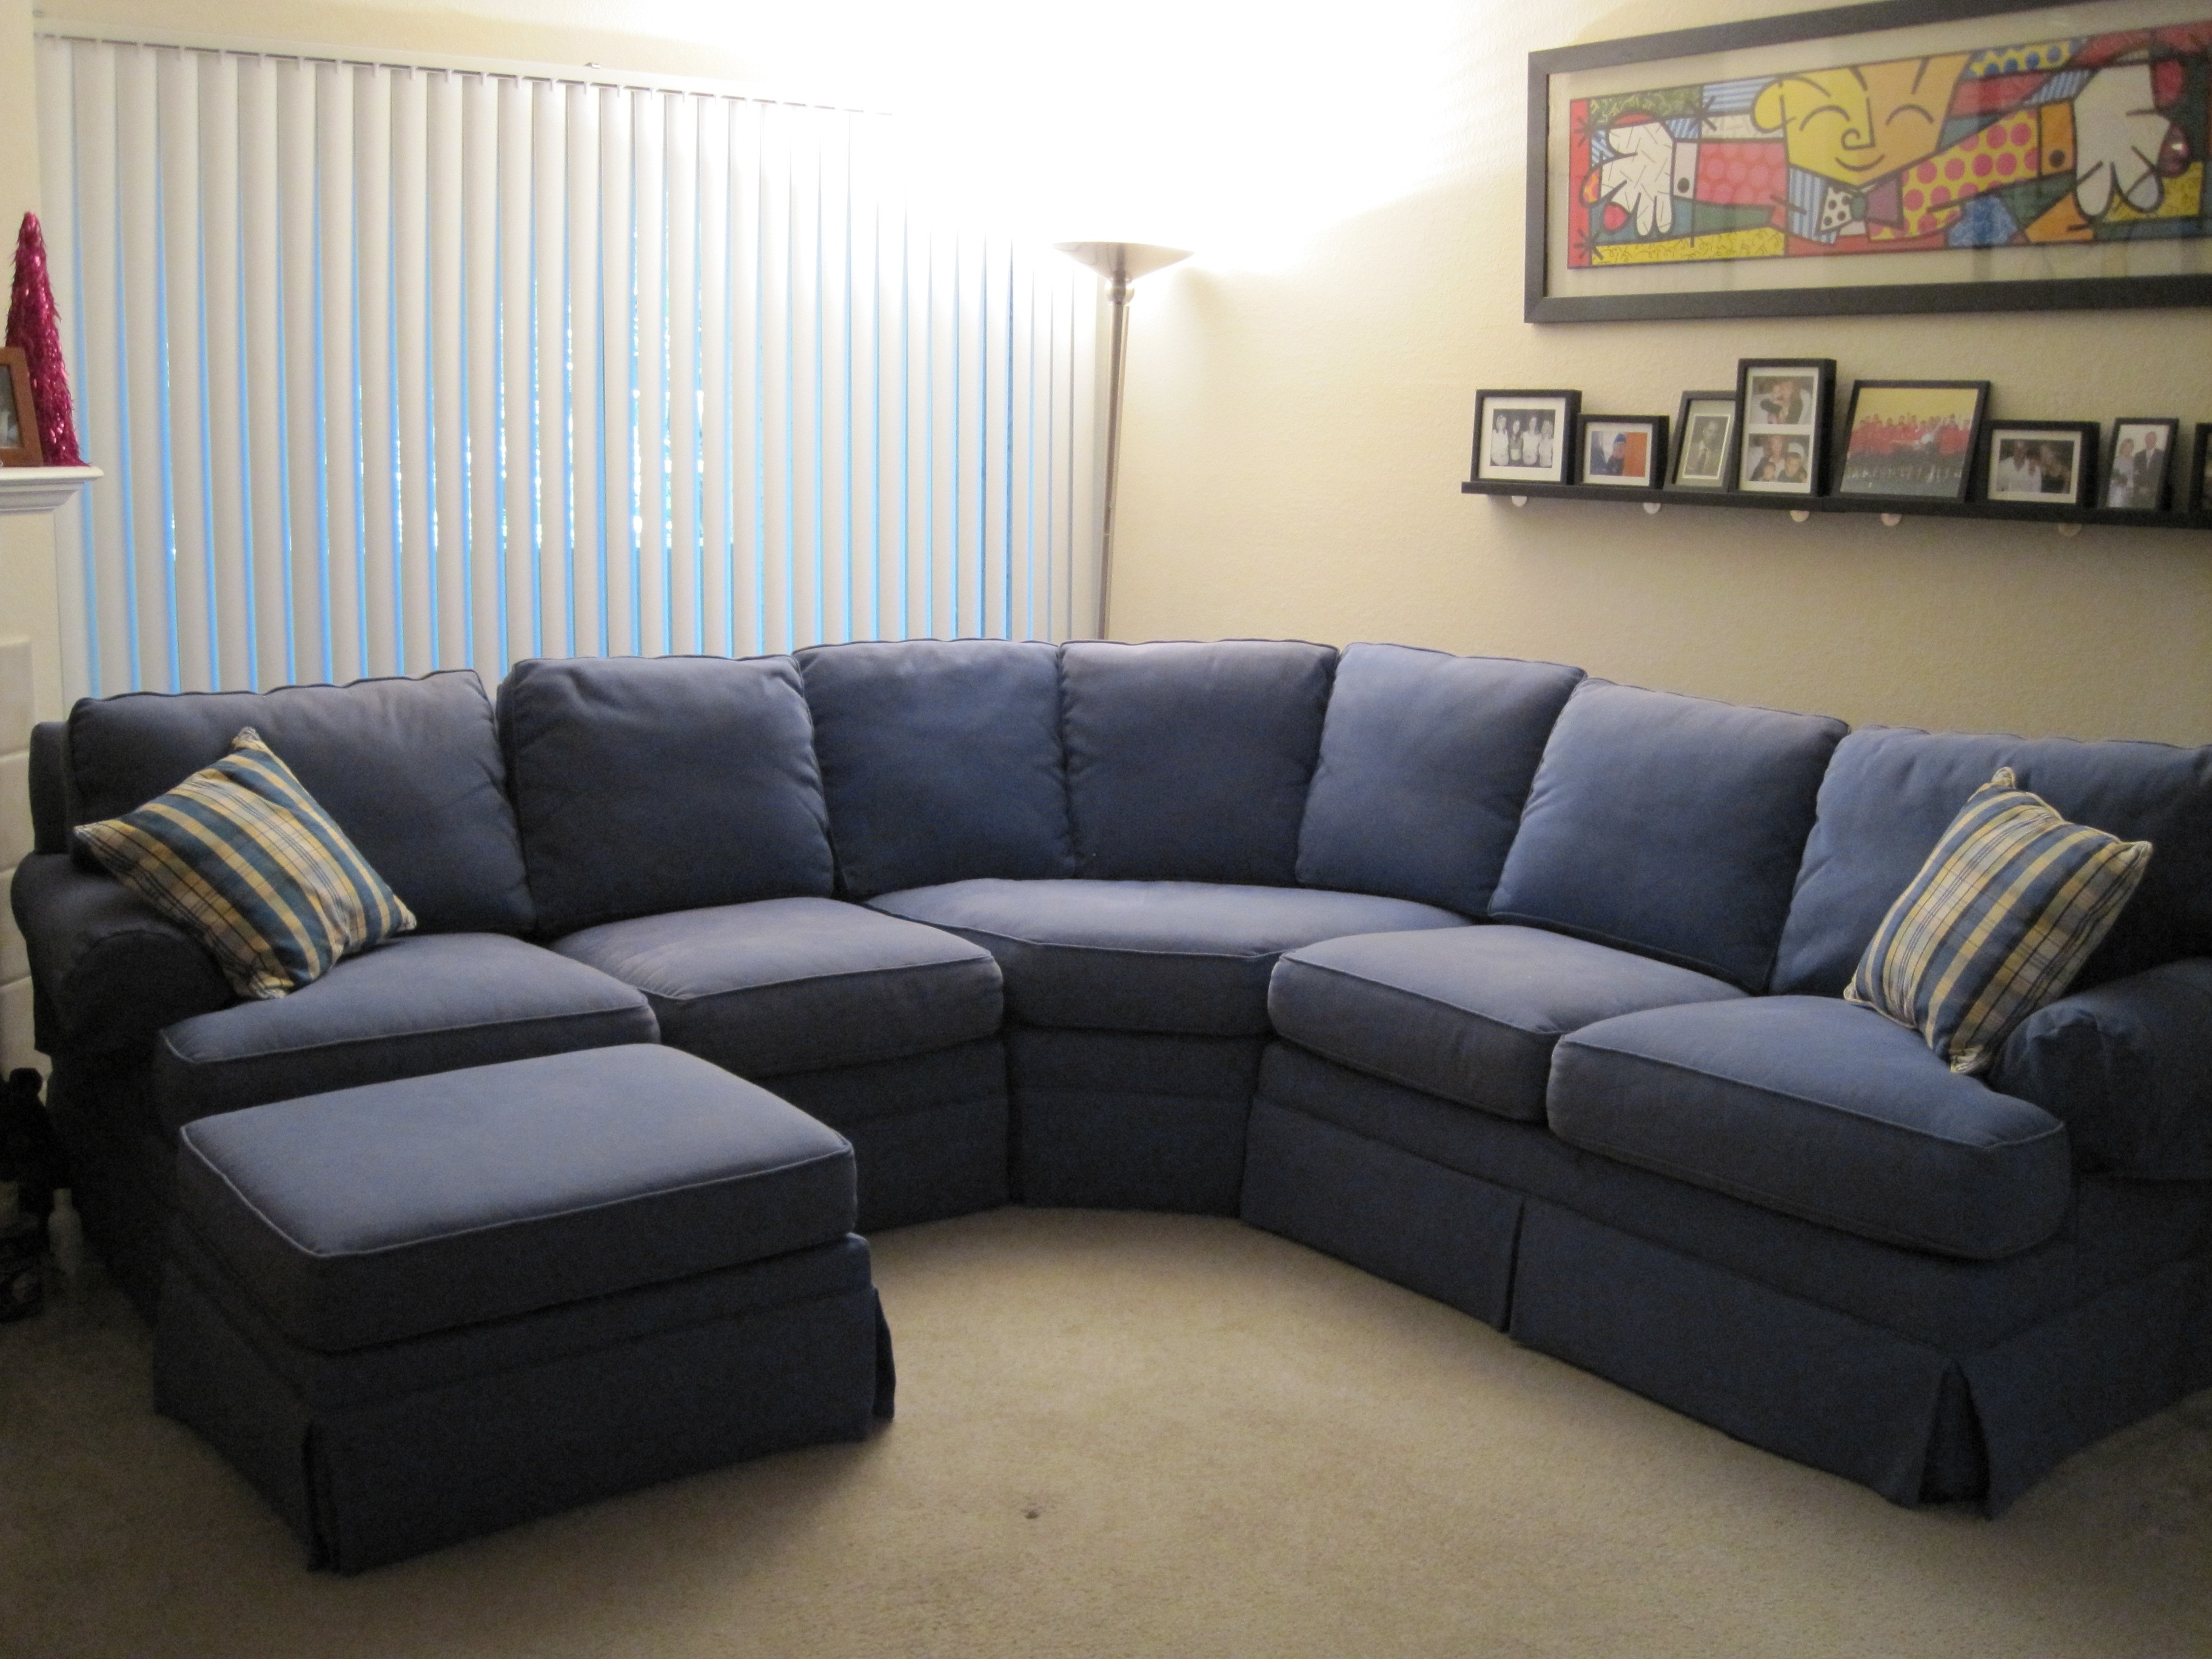 Widely Used Navy Blue Sectional Sofa Inspirational Leather With Additional Regarding Sectional Sofas In Stock (View 15 of 15)